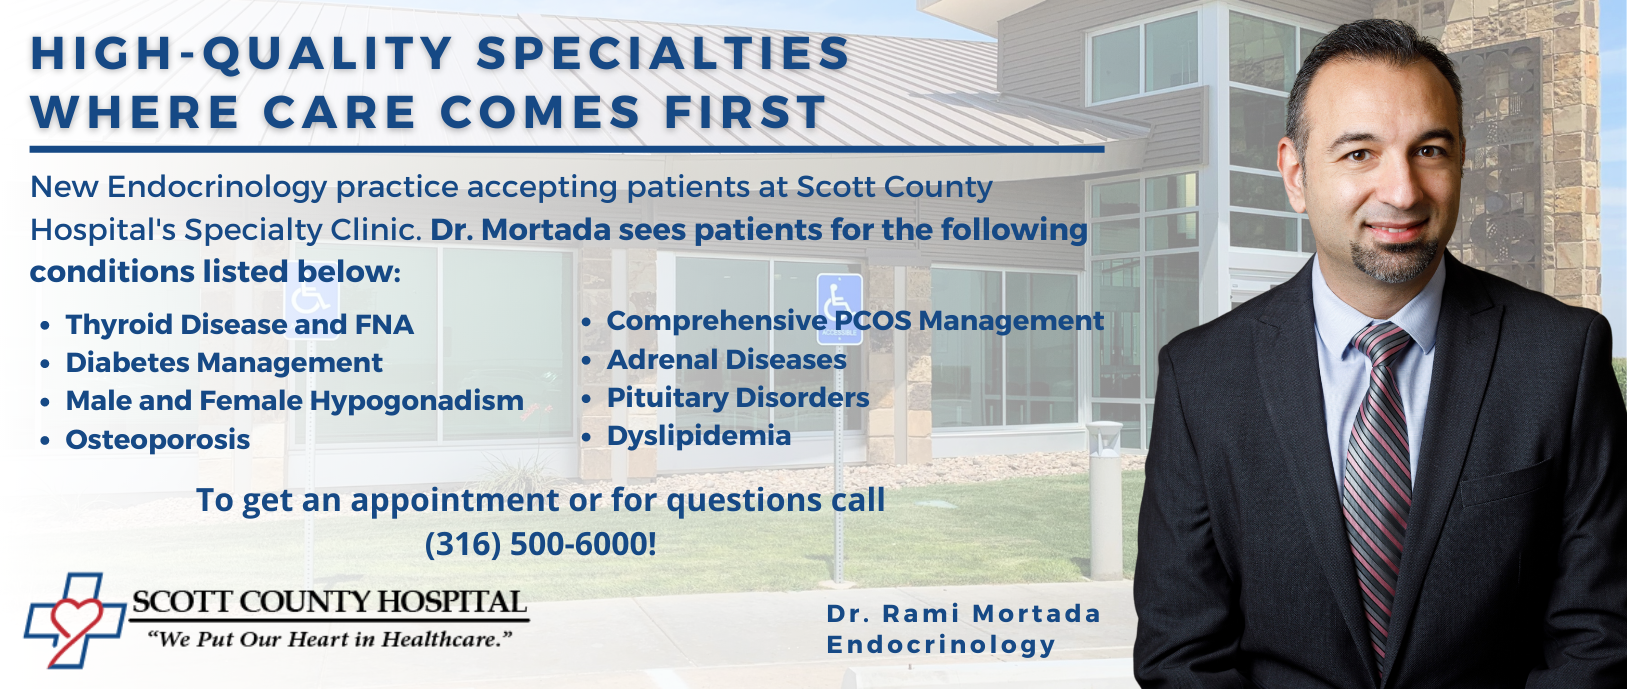 Picture of Dr. Rami Mortada  The Banner ad reads High-Quality Specialties Where Care Comes First New Endocrinology practice accepting patients at Scott County Hospital's Specialty Clinic. Dr. Mortada sees patients for the following conditions listed below: Thyroid Disease and FNA Diabetes Management Male and Female Hypogonadism  Osteoporosis Comprehensive PCOS Management Adrenal Diseases Pituitary Disorders Dyslipidemia To get an appointment or for questions call (316) 500-6000!